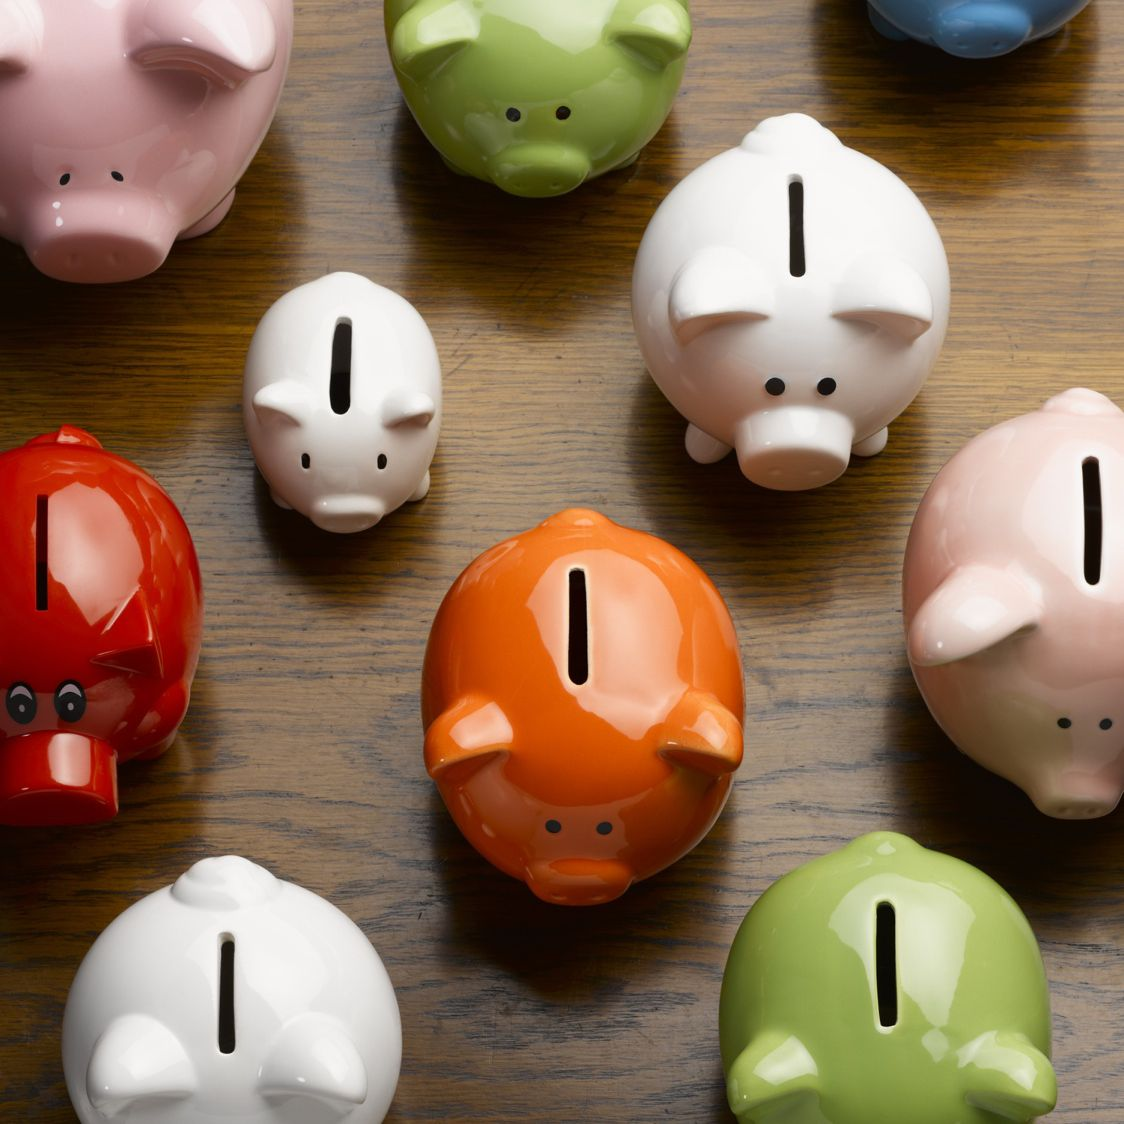 How Should I Prioritize My Savings Goals?